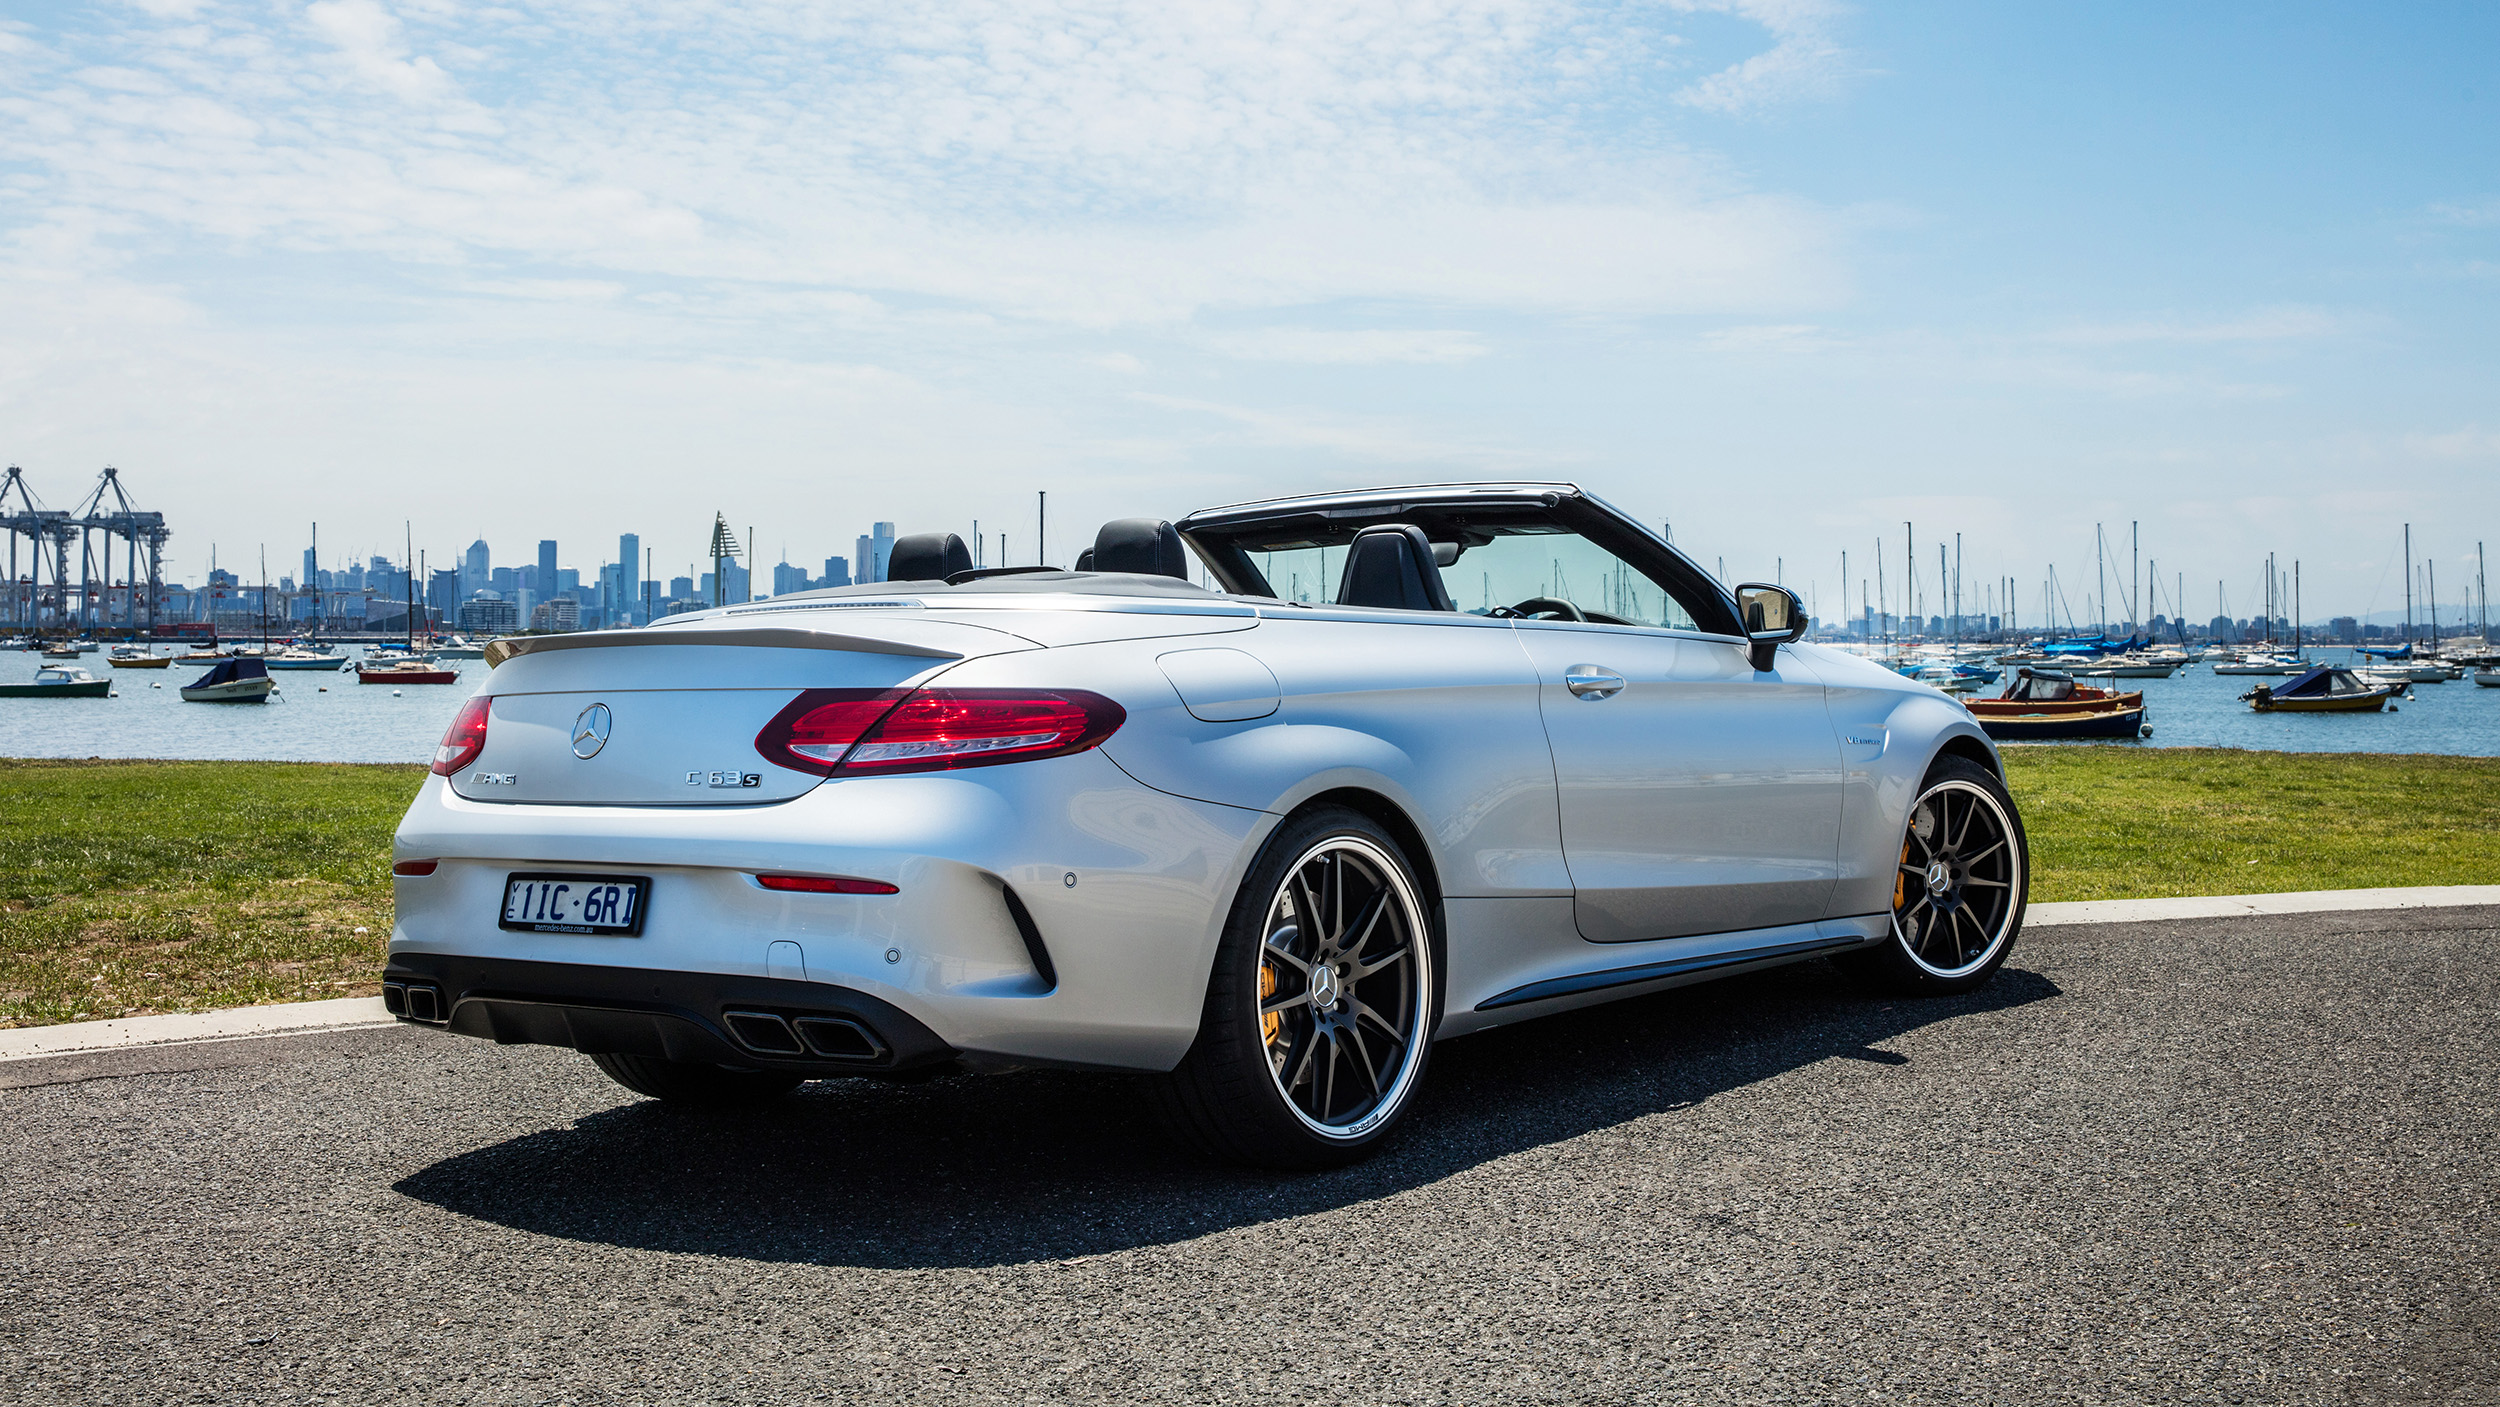 2017 Mercedes-AMG C63 S Cabriolet review - photos | CarAdvice